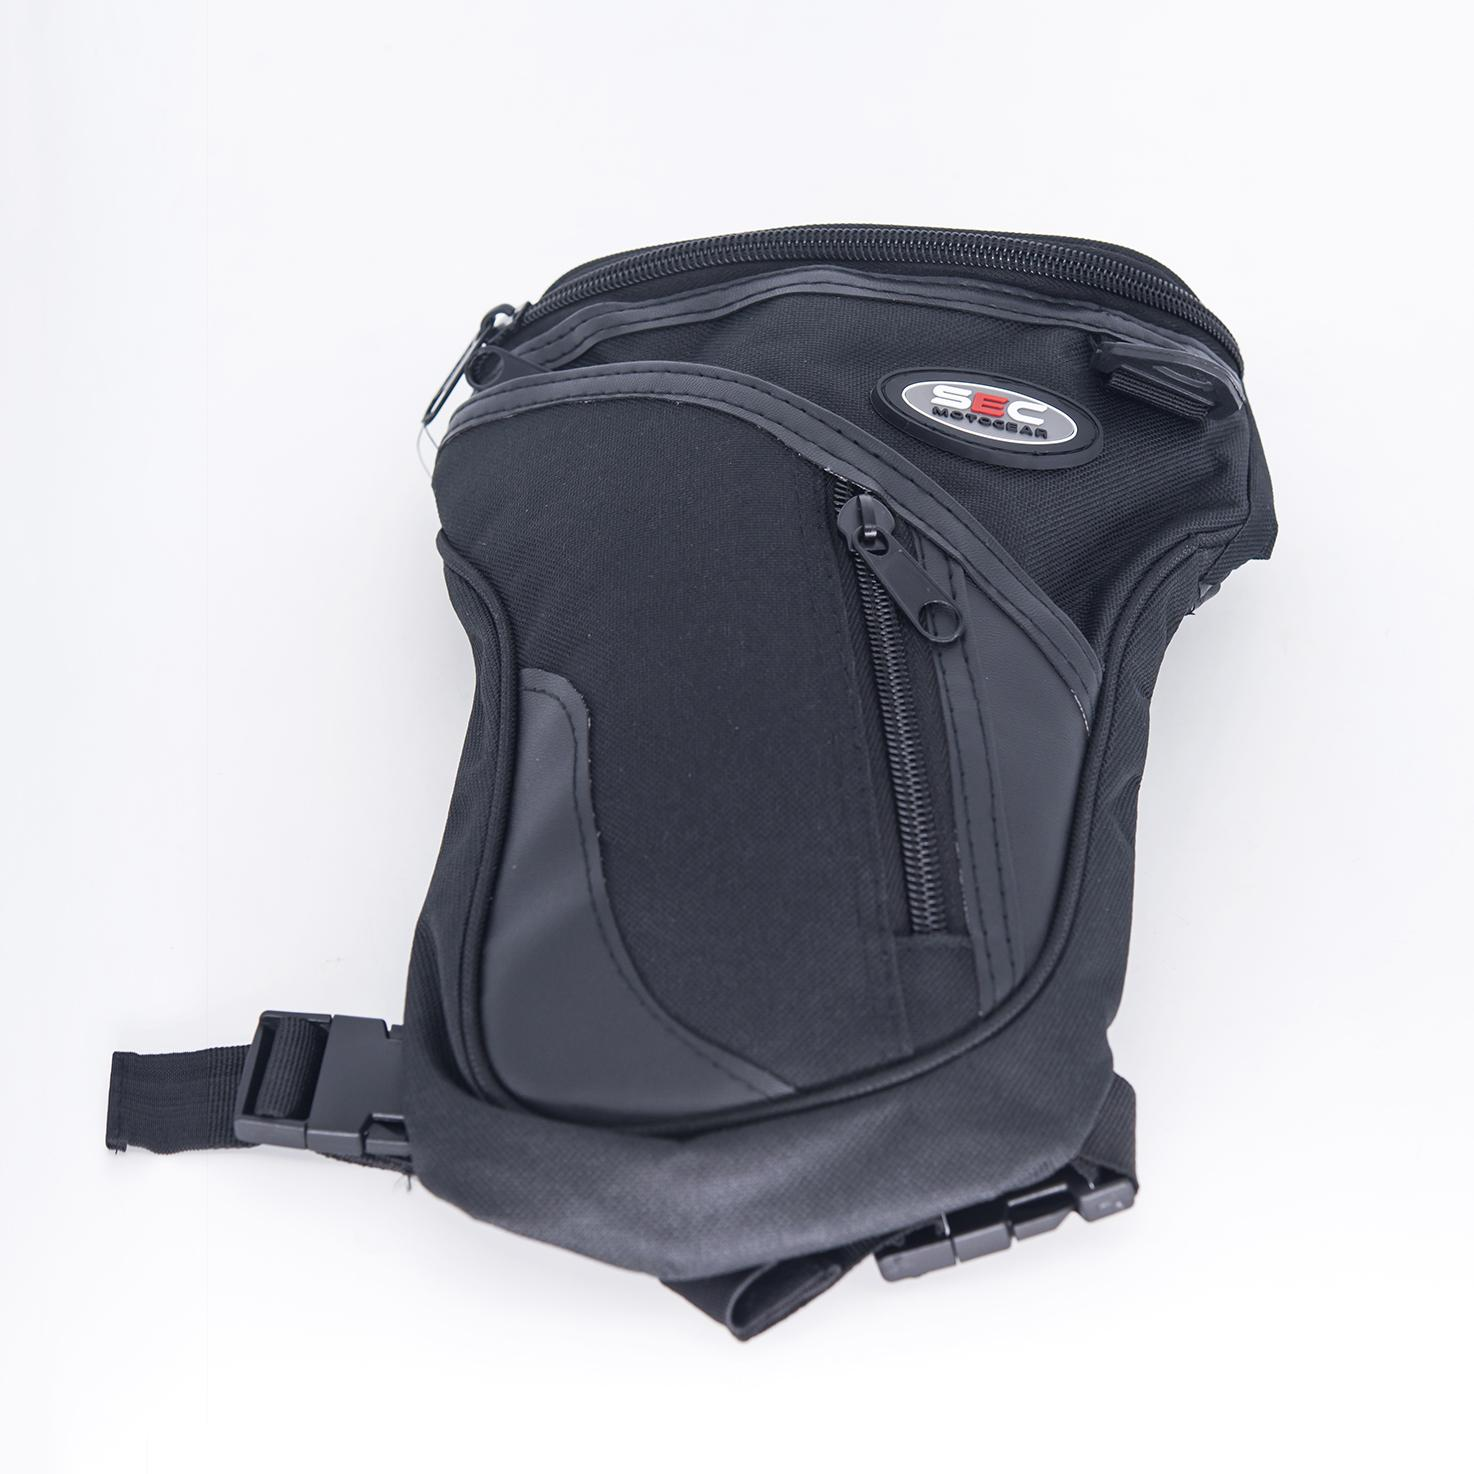 a9c38ad7ea15 Motorcycle Luggage for sale - Motorcycle Saddlebags online brands ...